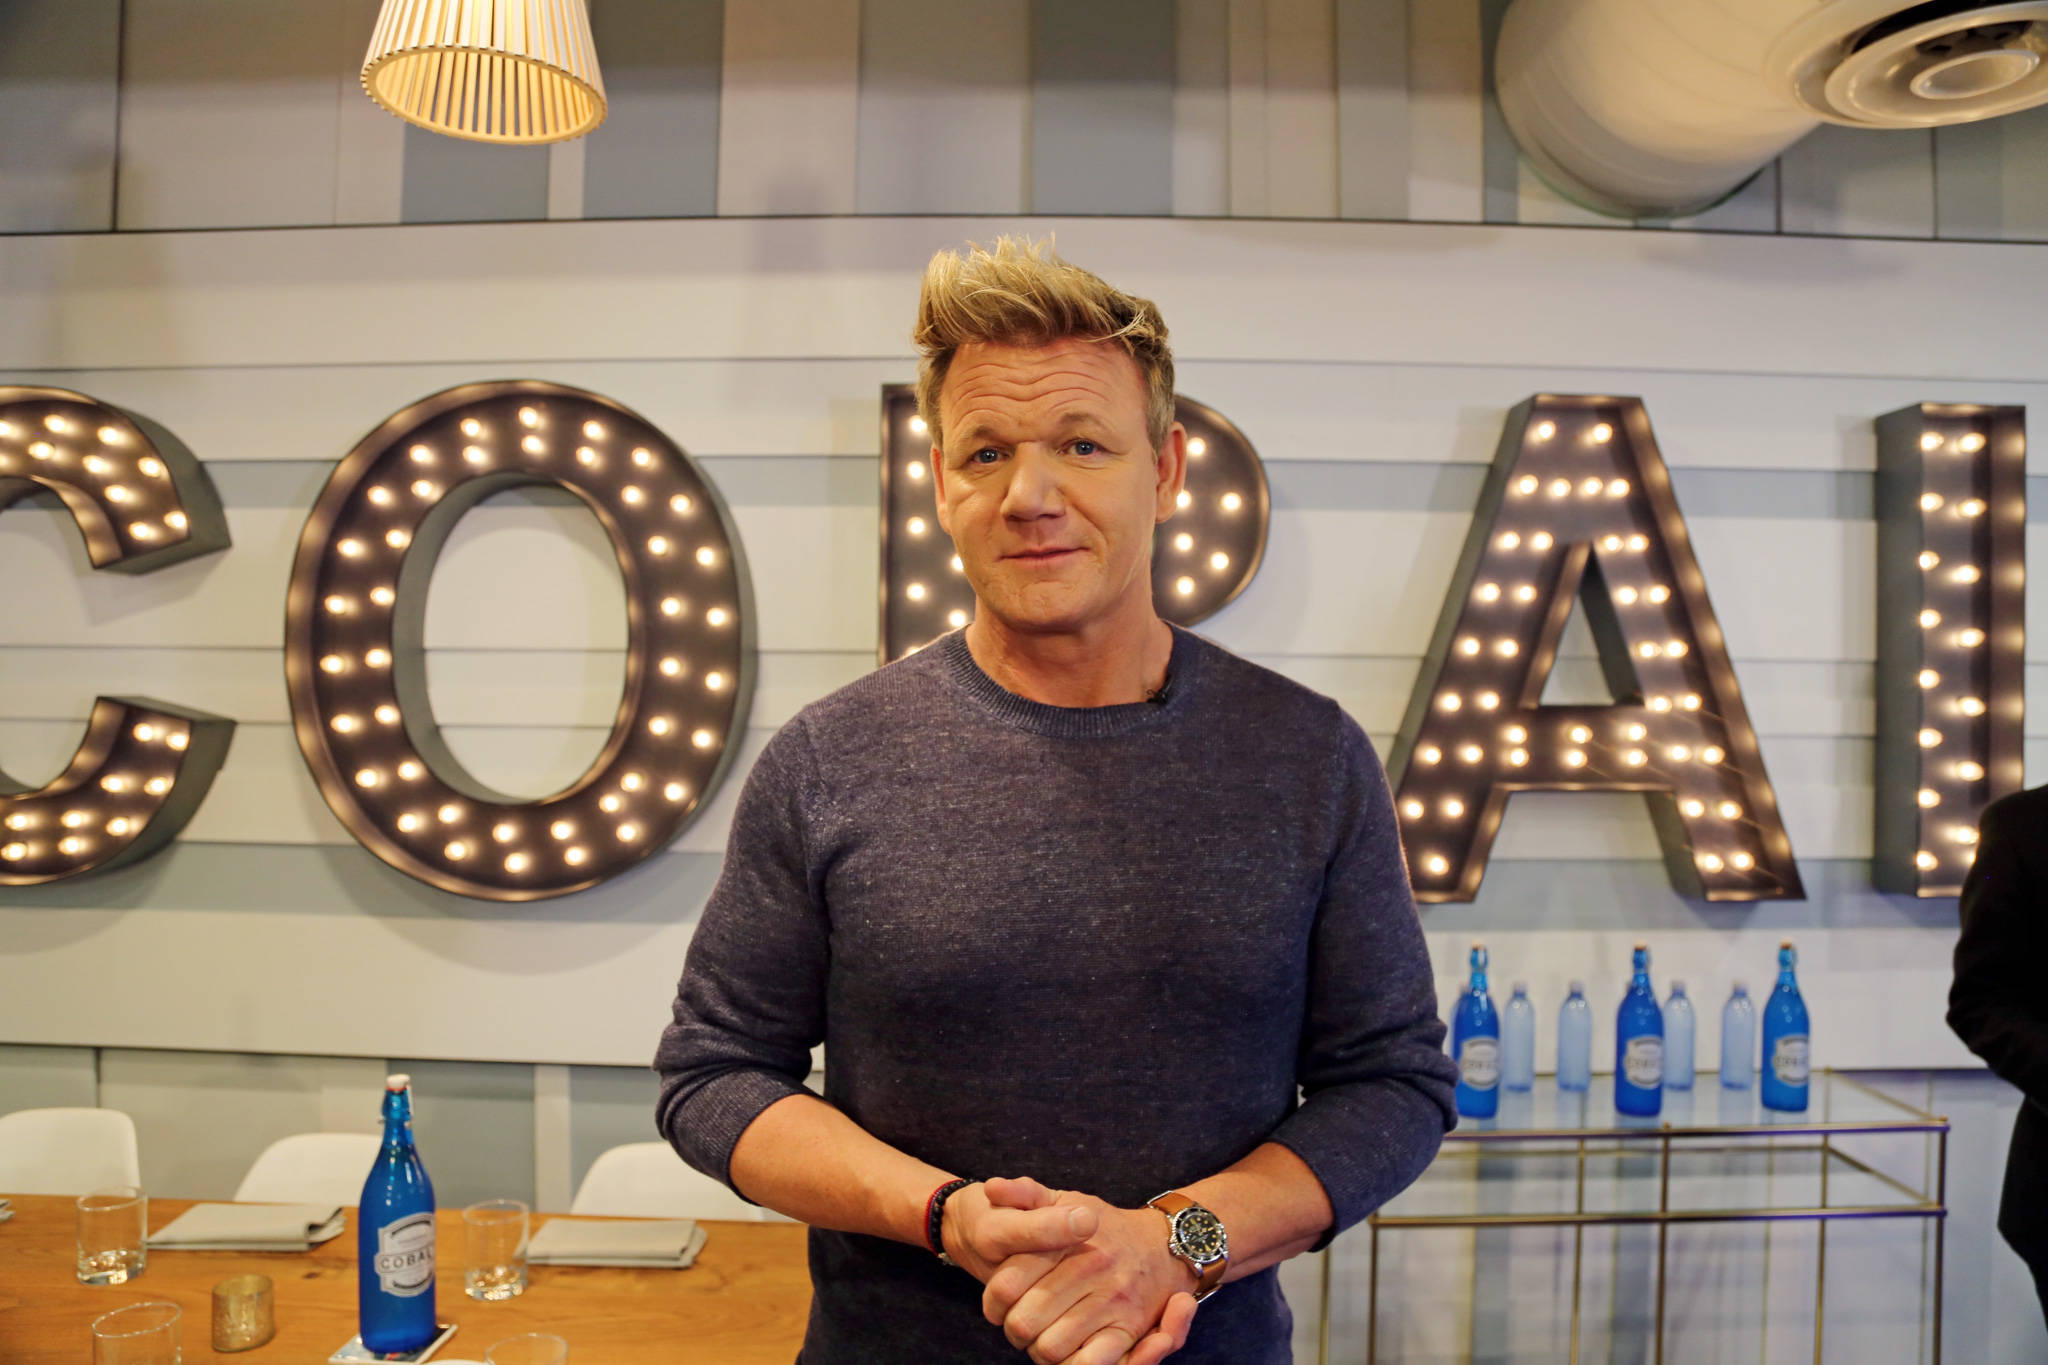 Chef Gordon Ramsay brought a signature dish to Toronto...